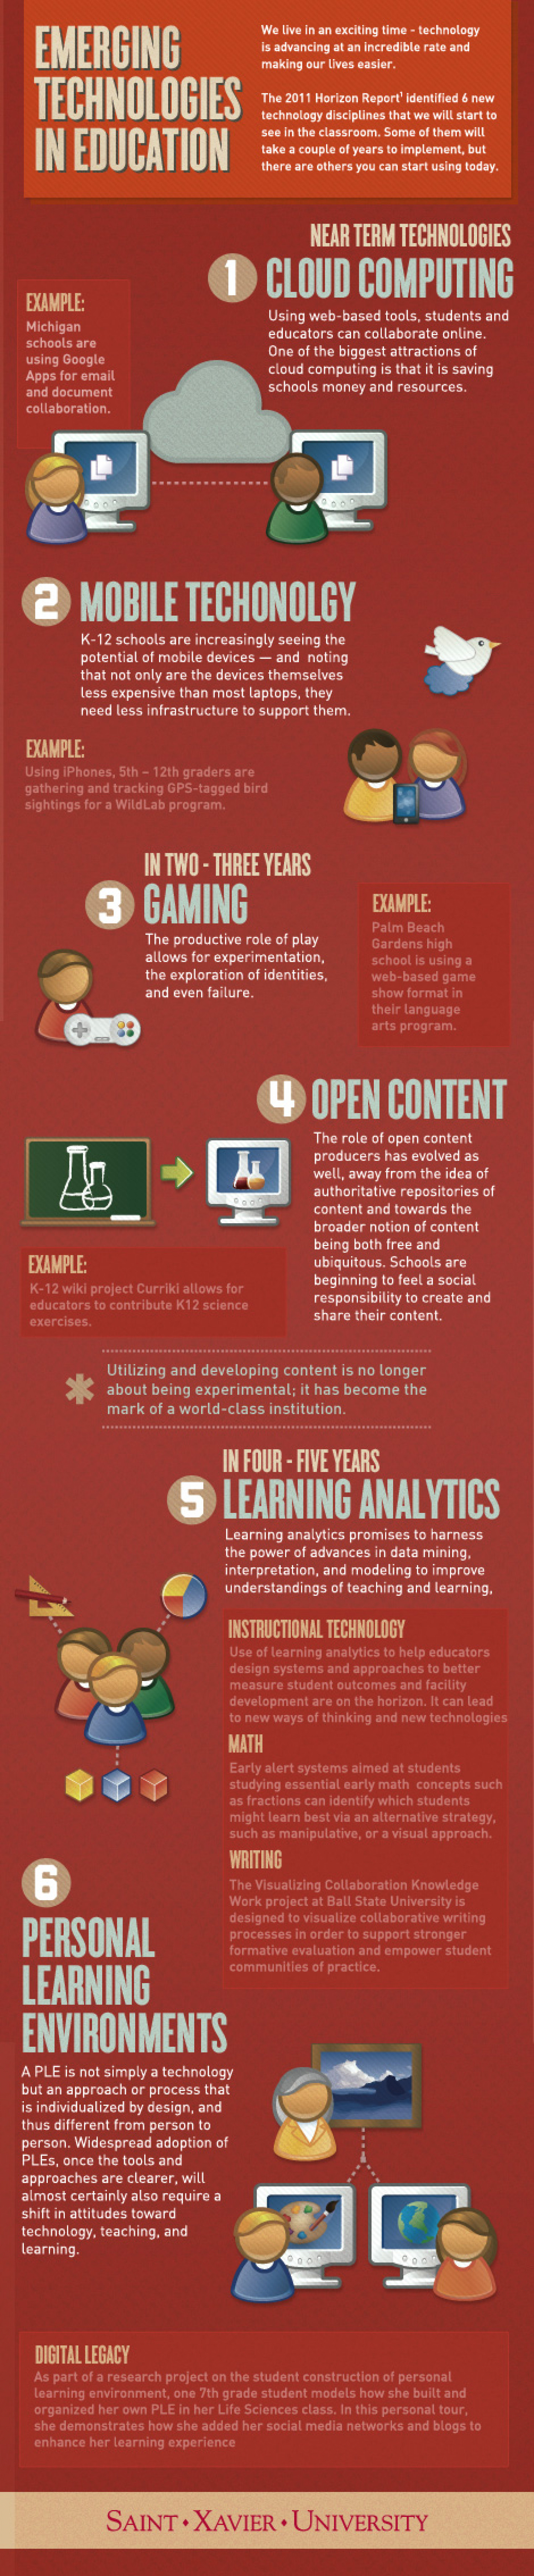 Six Emerging Technologies in Education Infographic